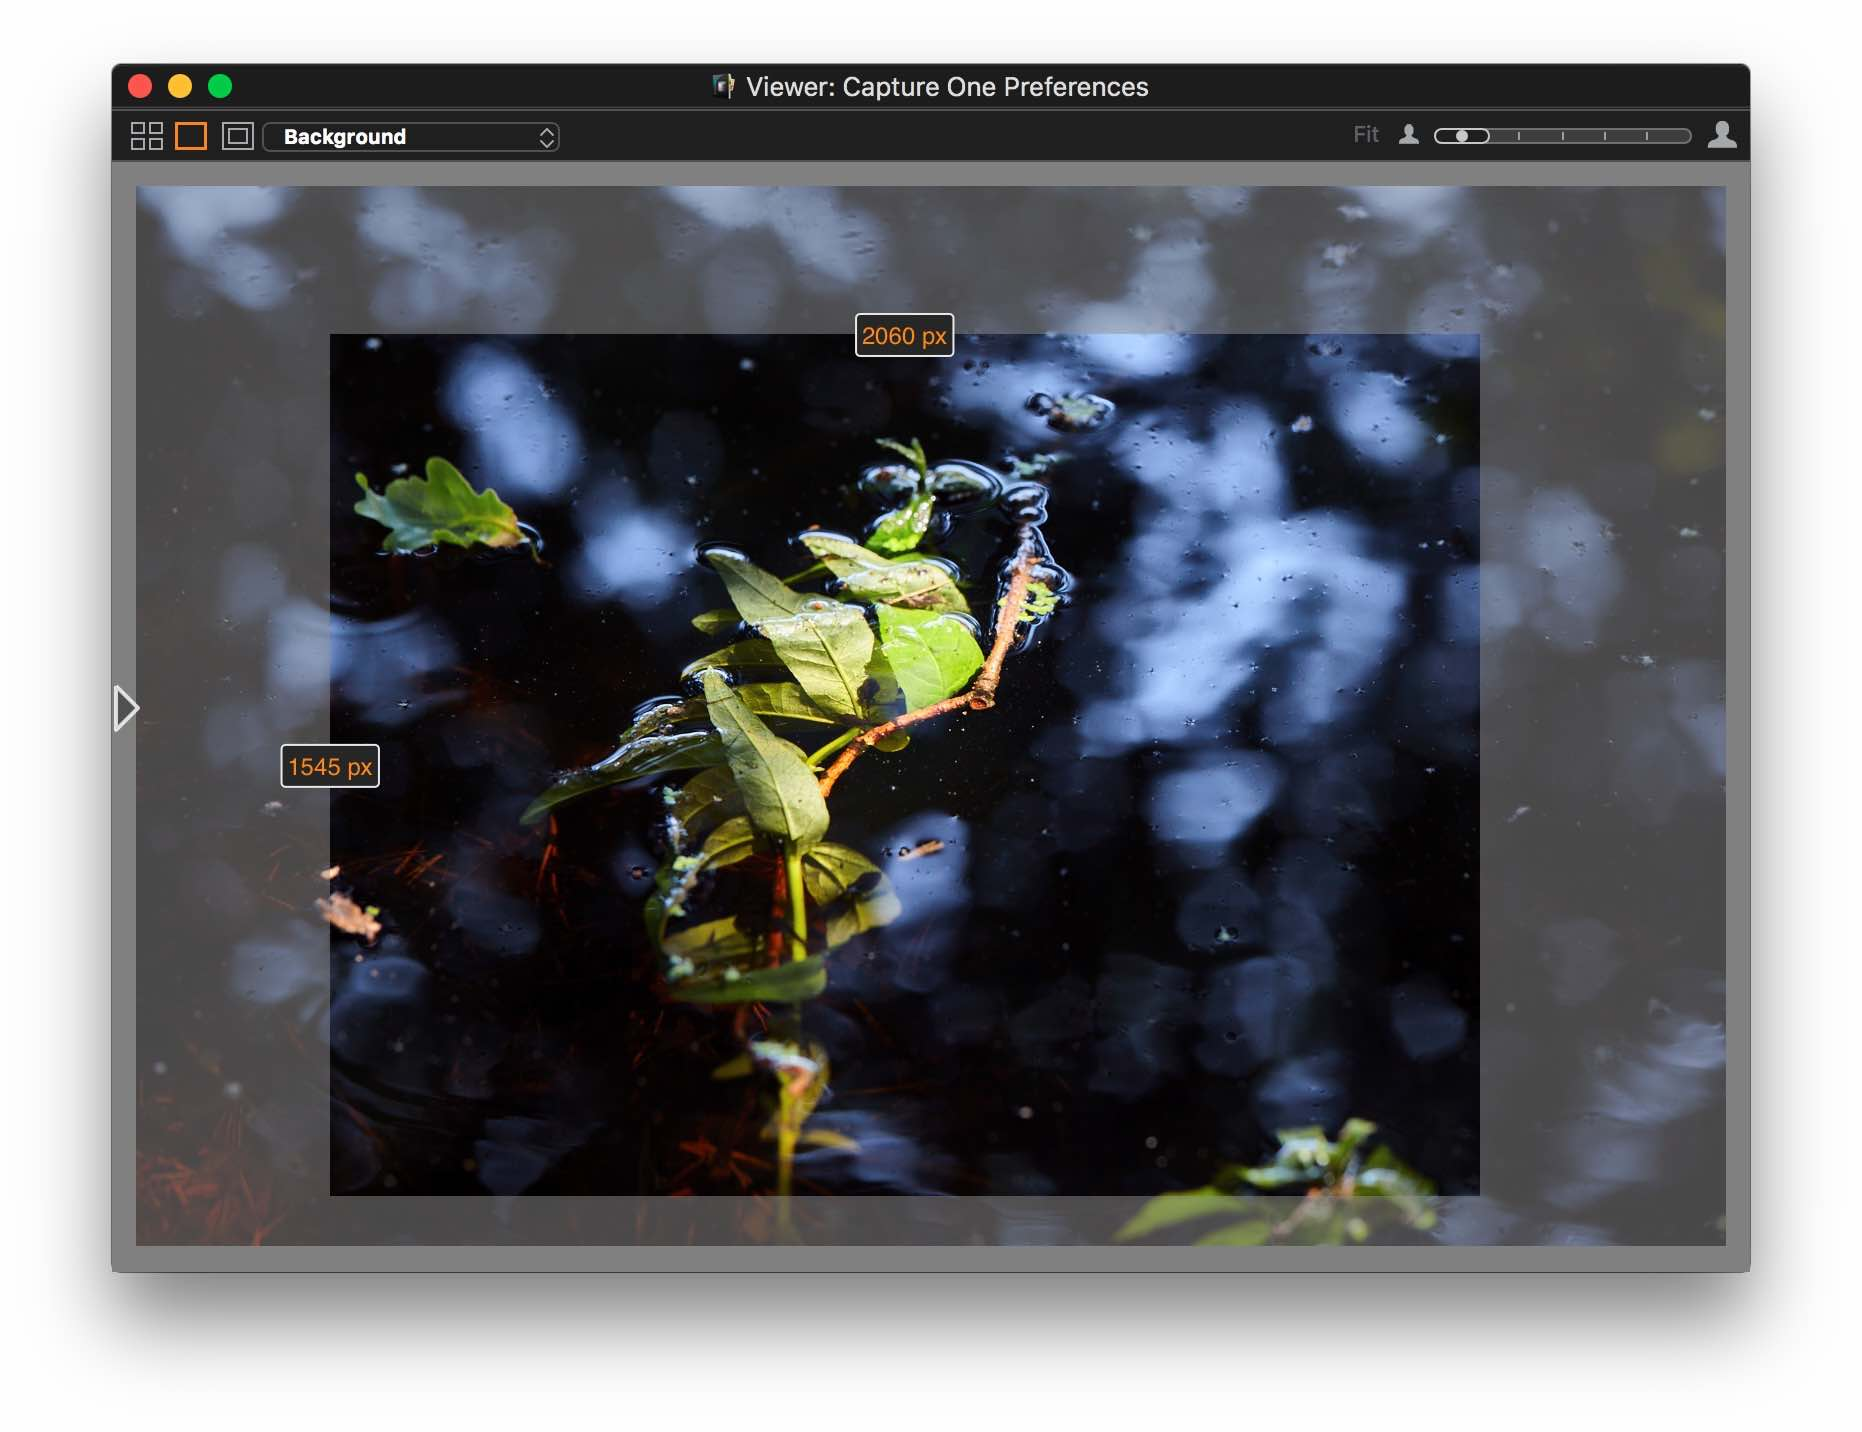 capture one pro 10, viewer, mask opacity 50